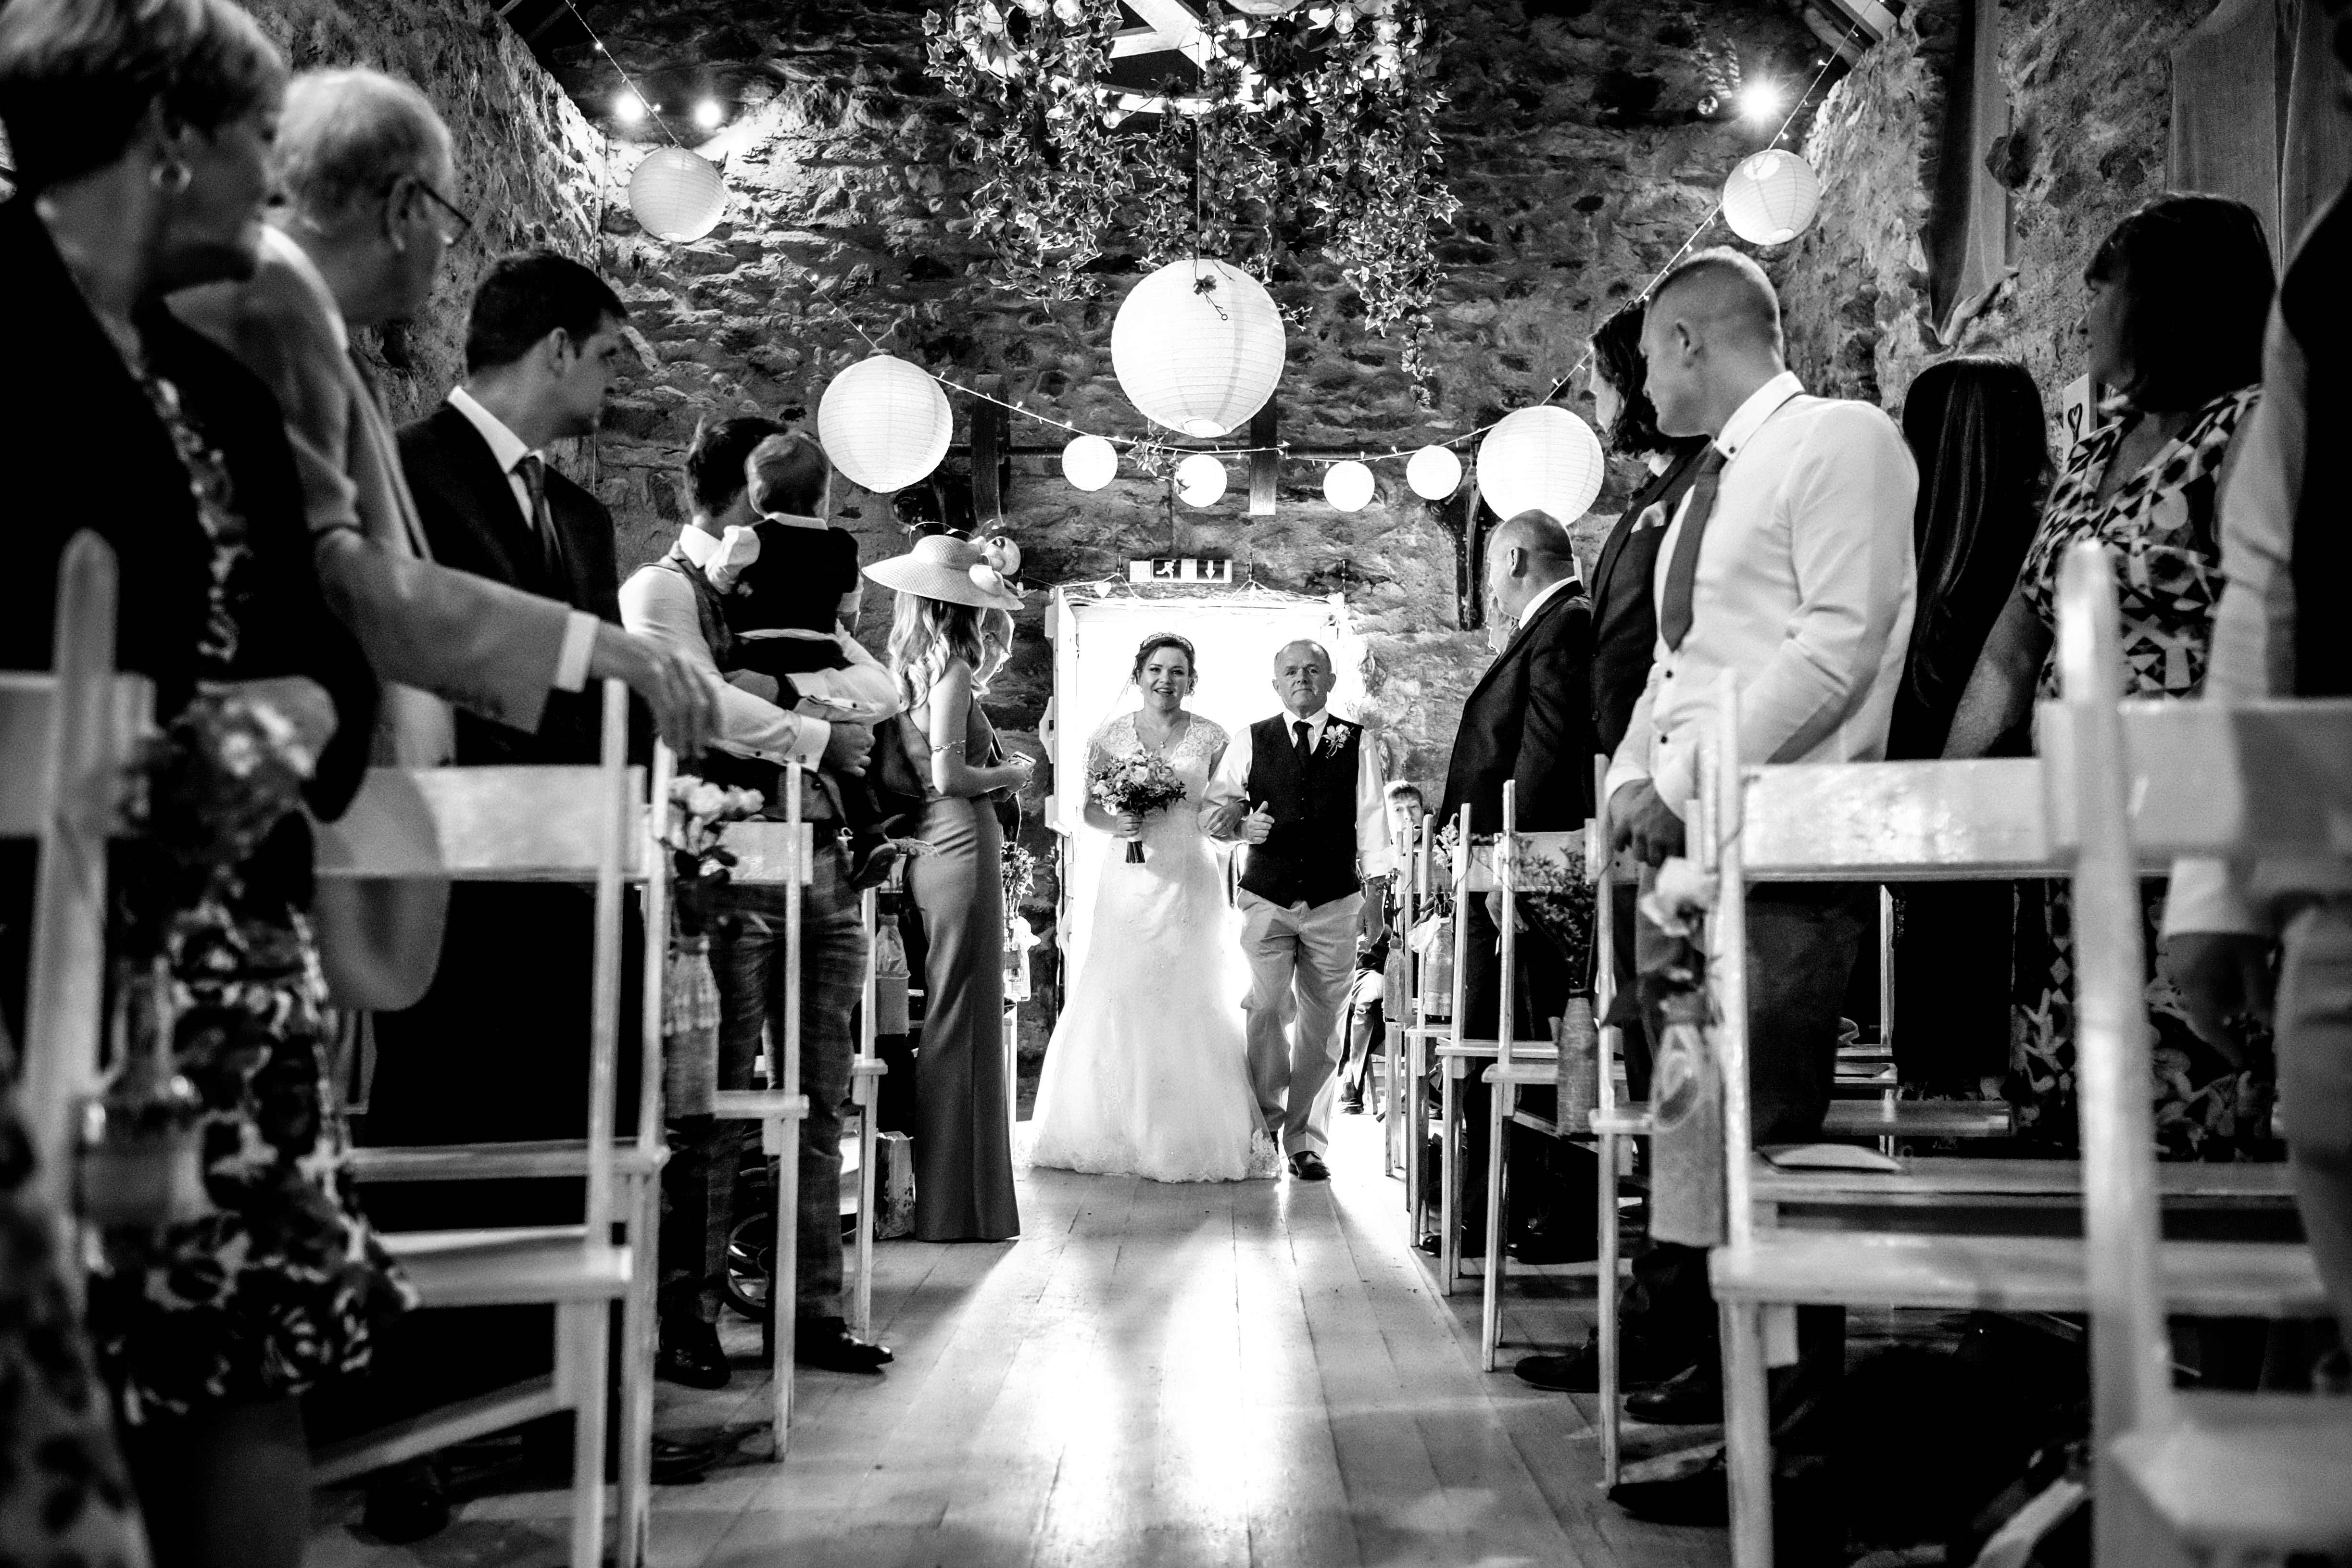 Hafod Farm Wedding - Bride and father walking up the aisle.